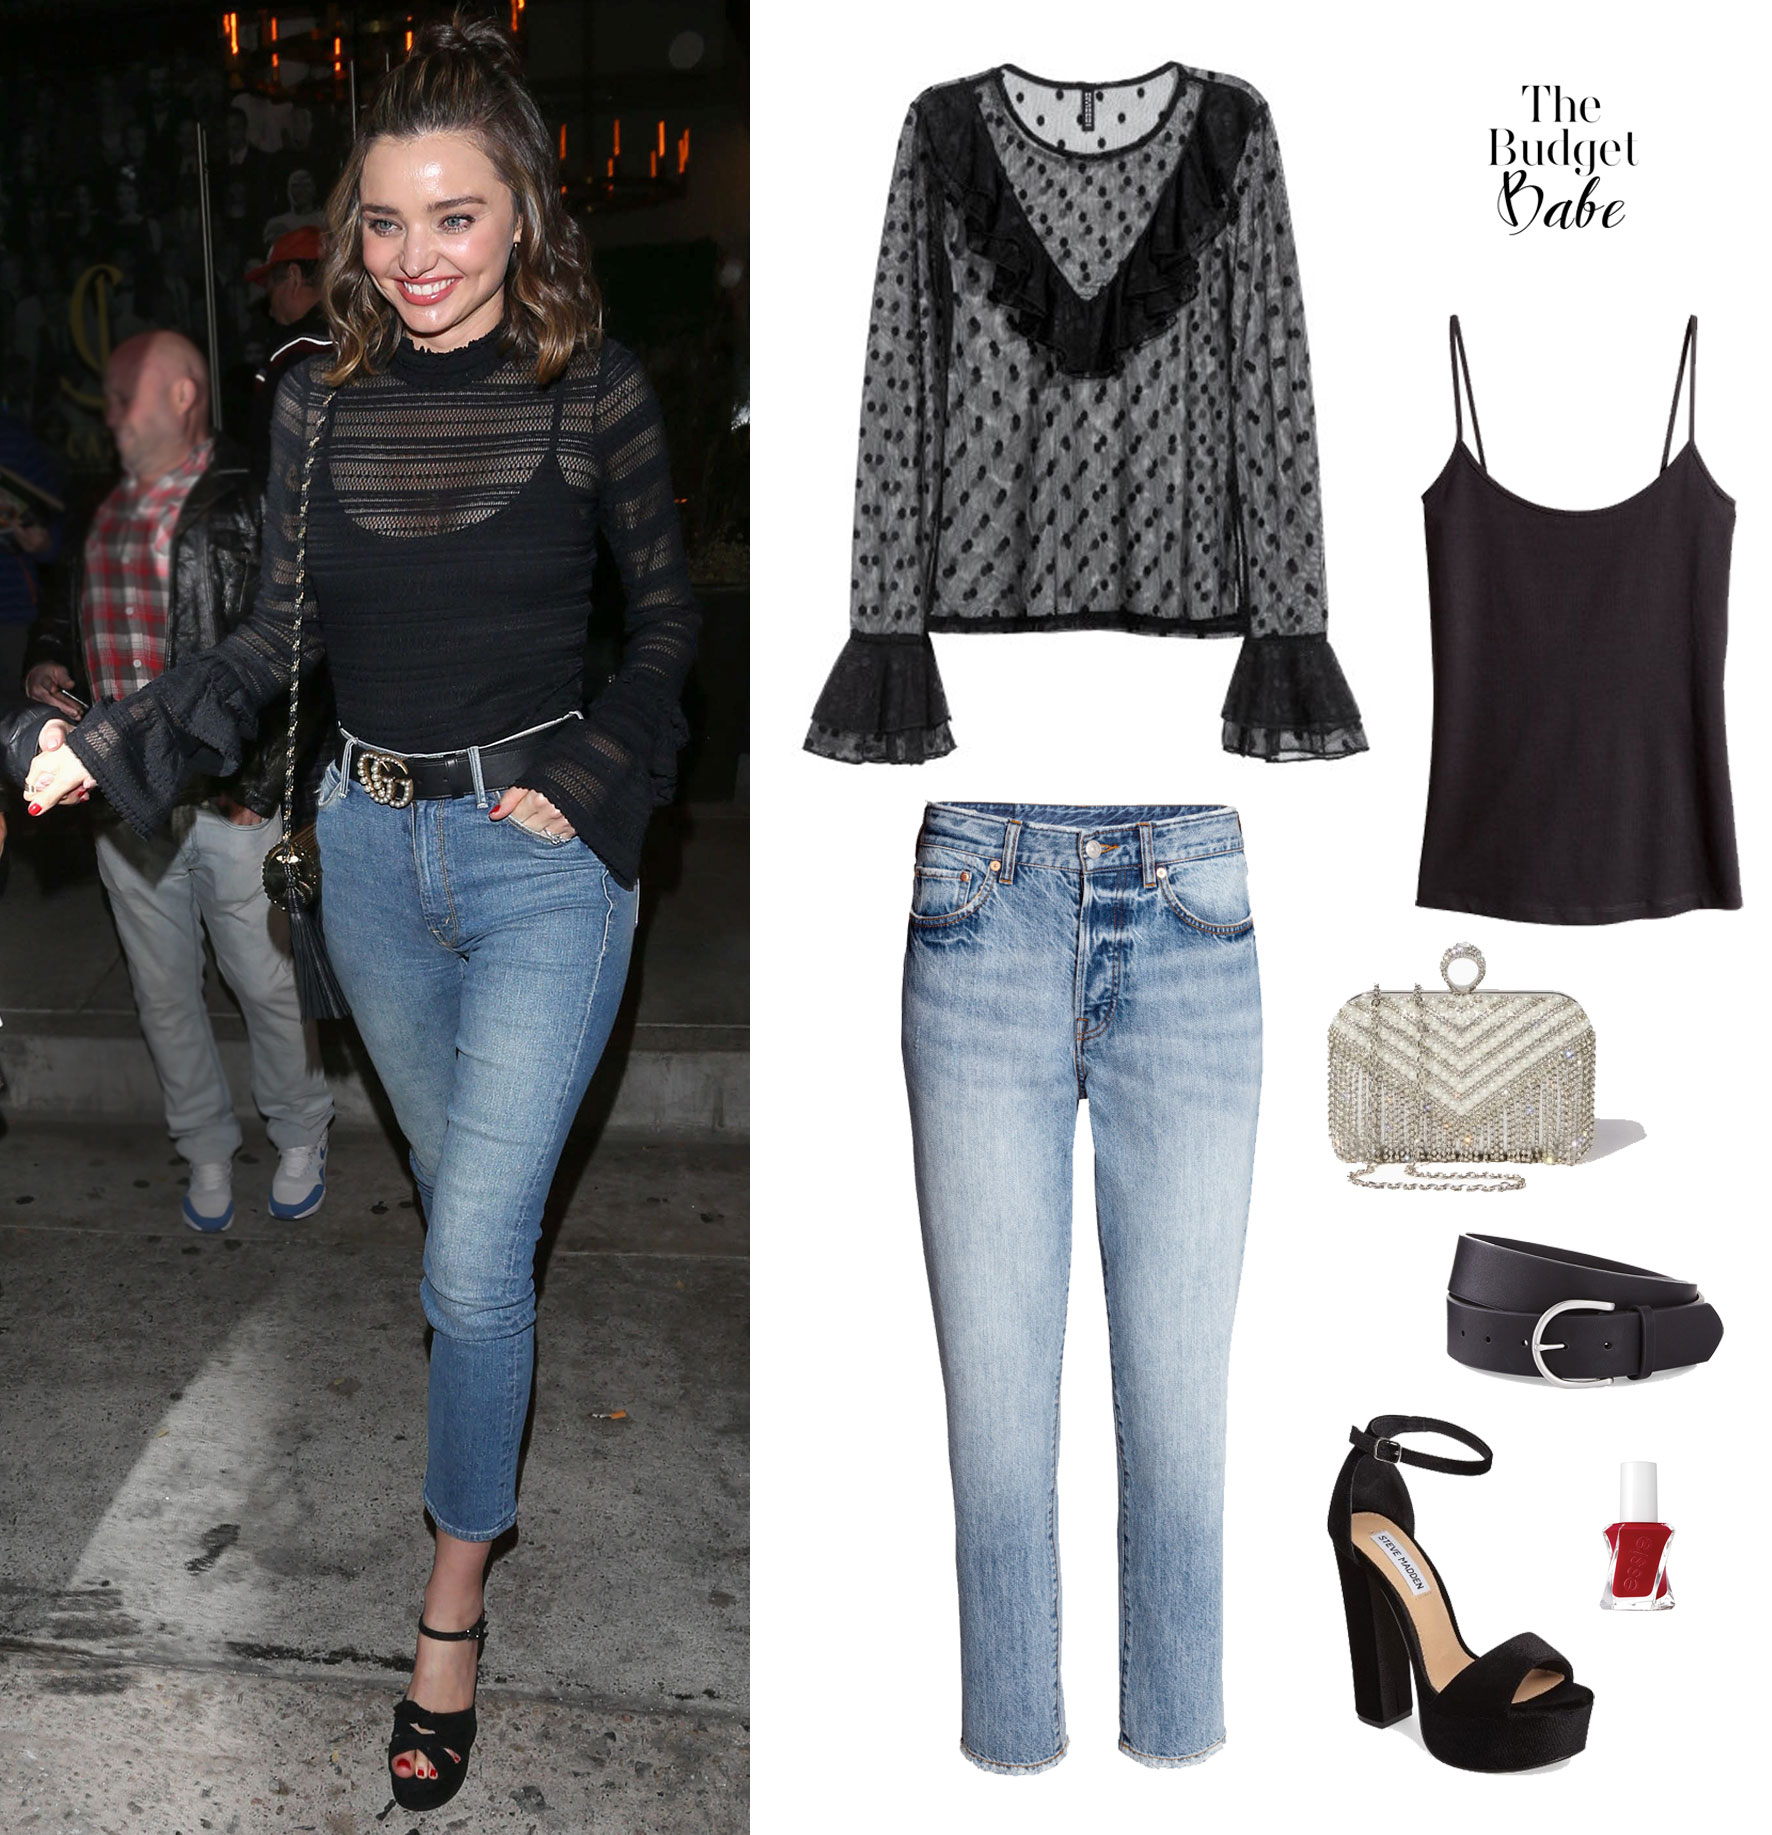 Miranda Kerr shows off a sexy going out look, and we've got the pieces you need to get it for less.